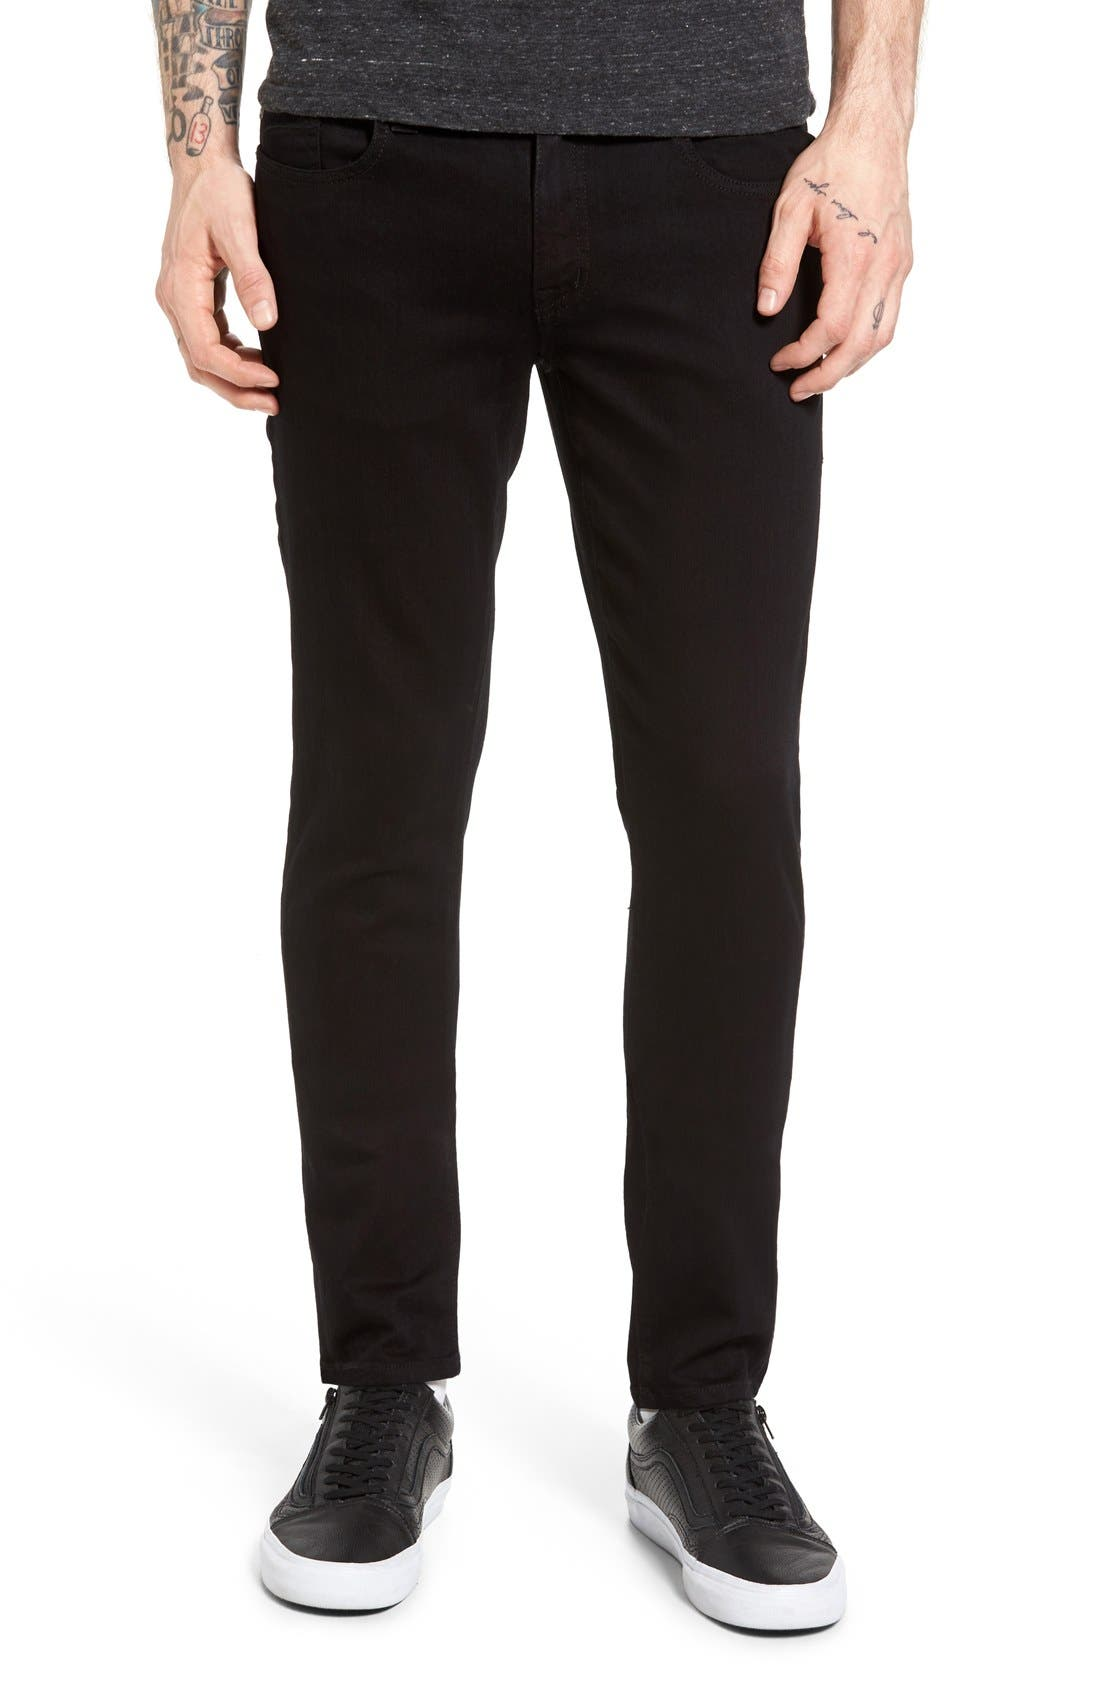 Alternate Image 1 Selected - Fidelity Denim Vantage Skinny Fit Jeans (Ever Black)